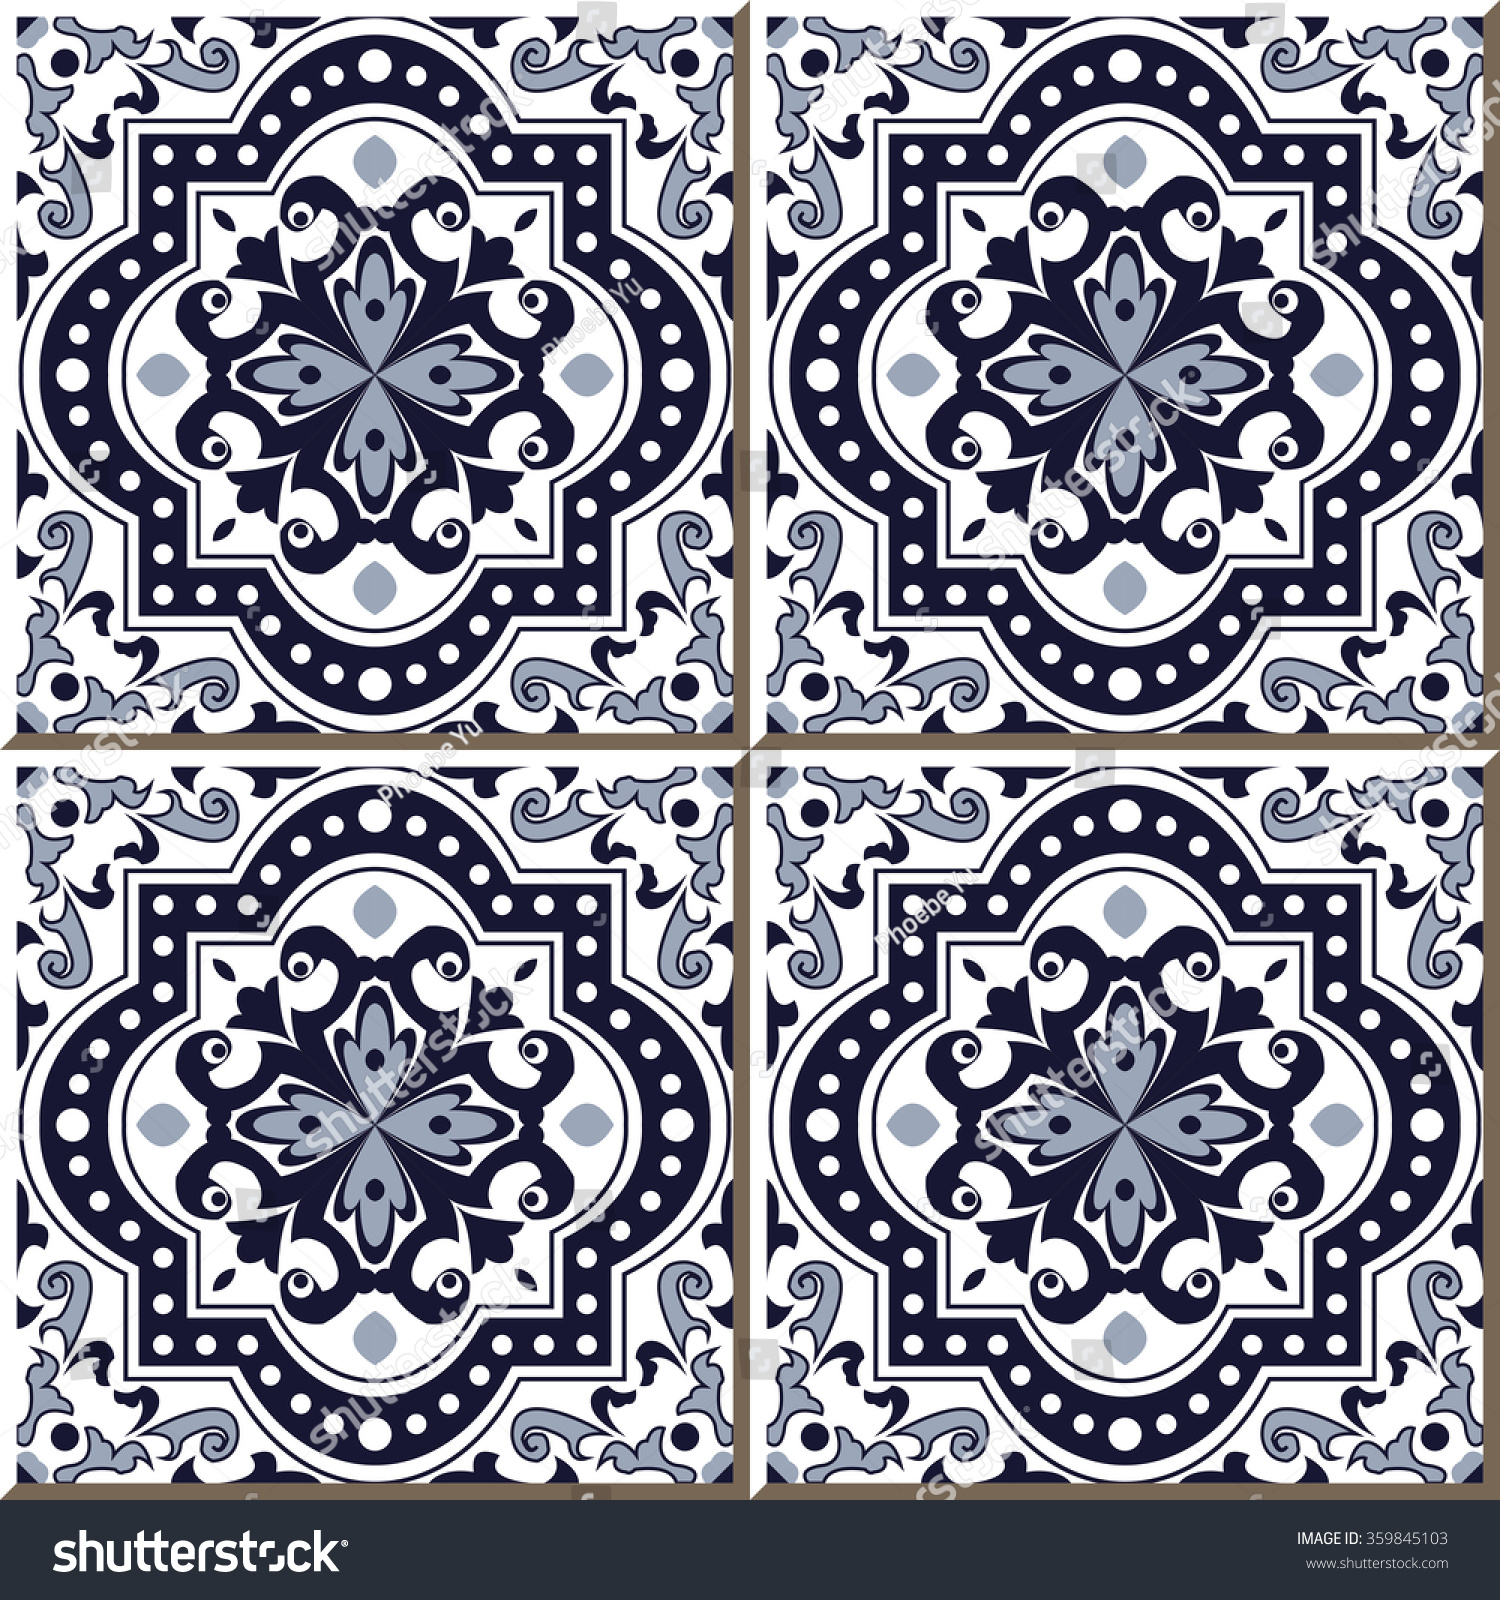 Moroccan geometric pattern royalty free stock photos image 13547078 - Moroccan Patterns Pinterest 450x470 Curve